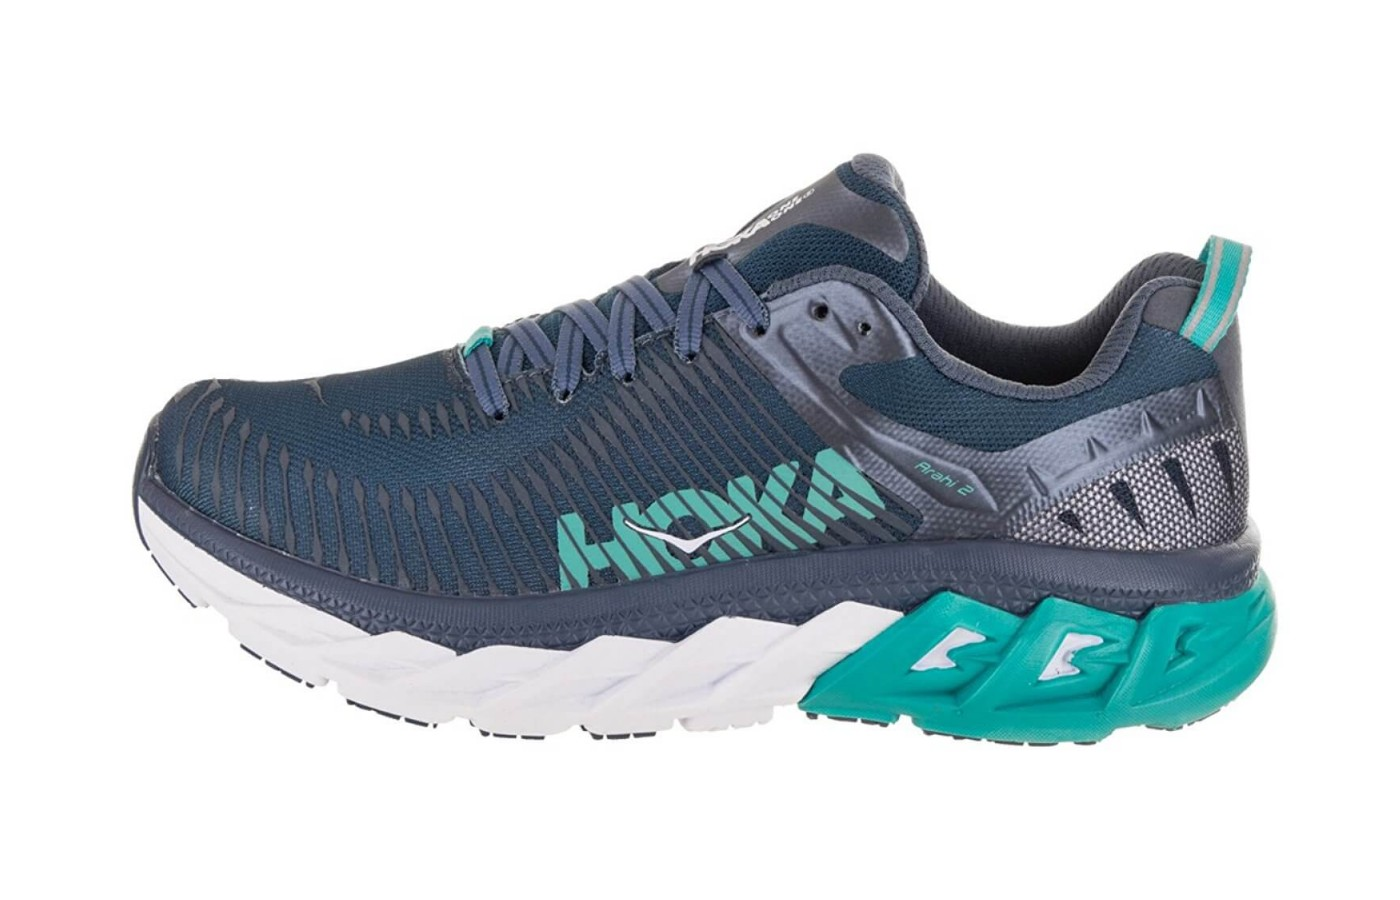 The Hoka One One Arahi 2 features Meta Rocker geometry